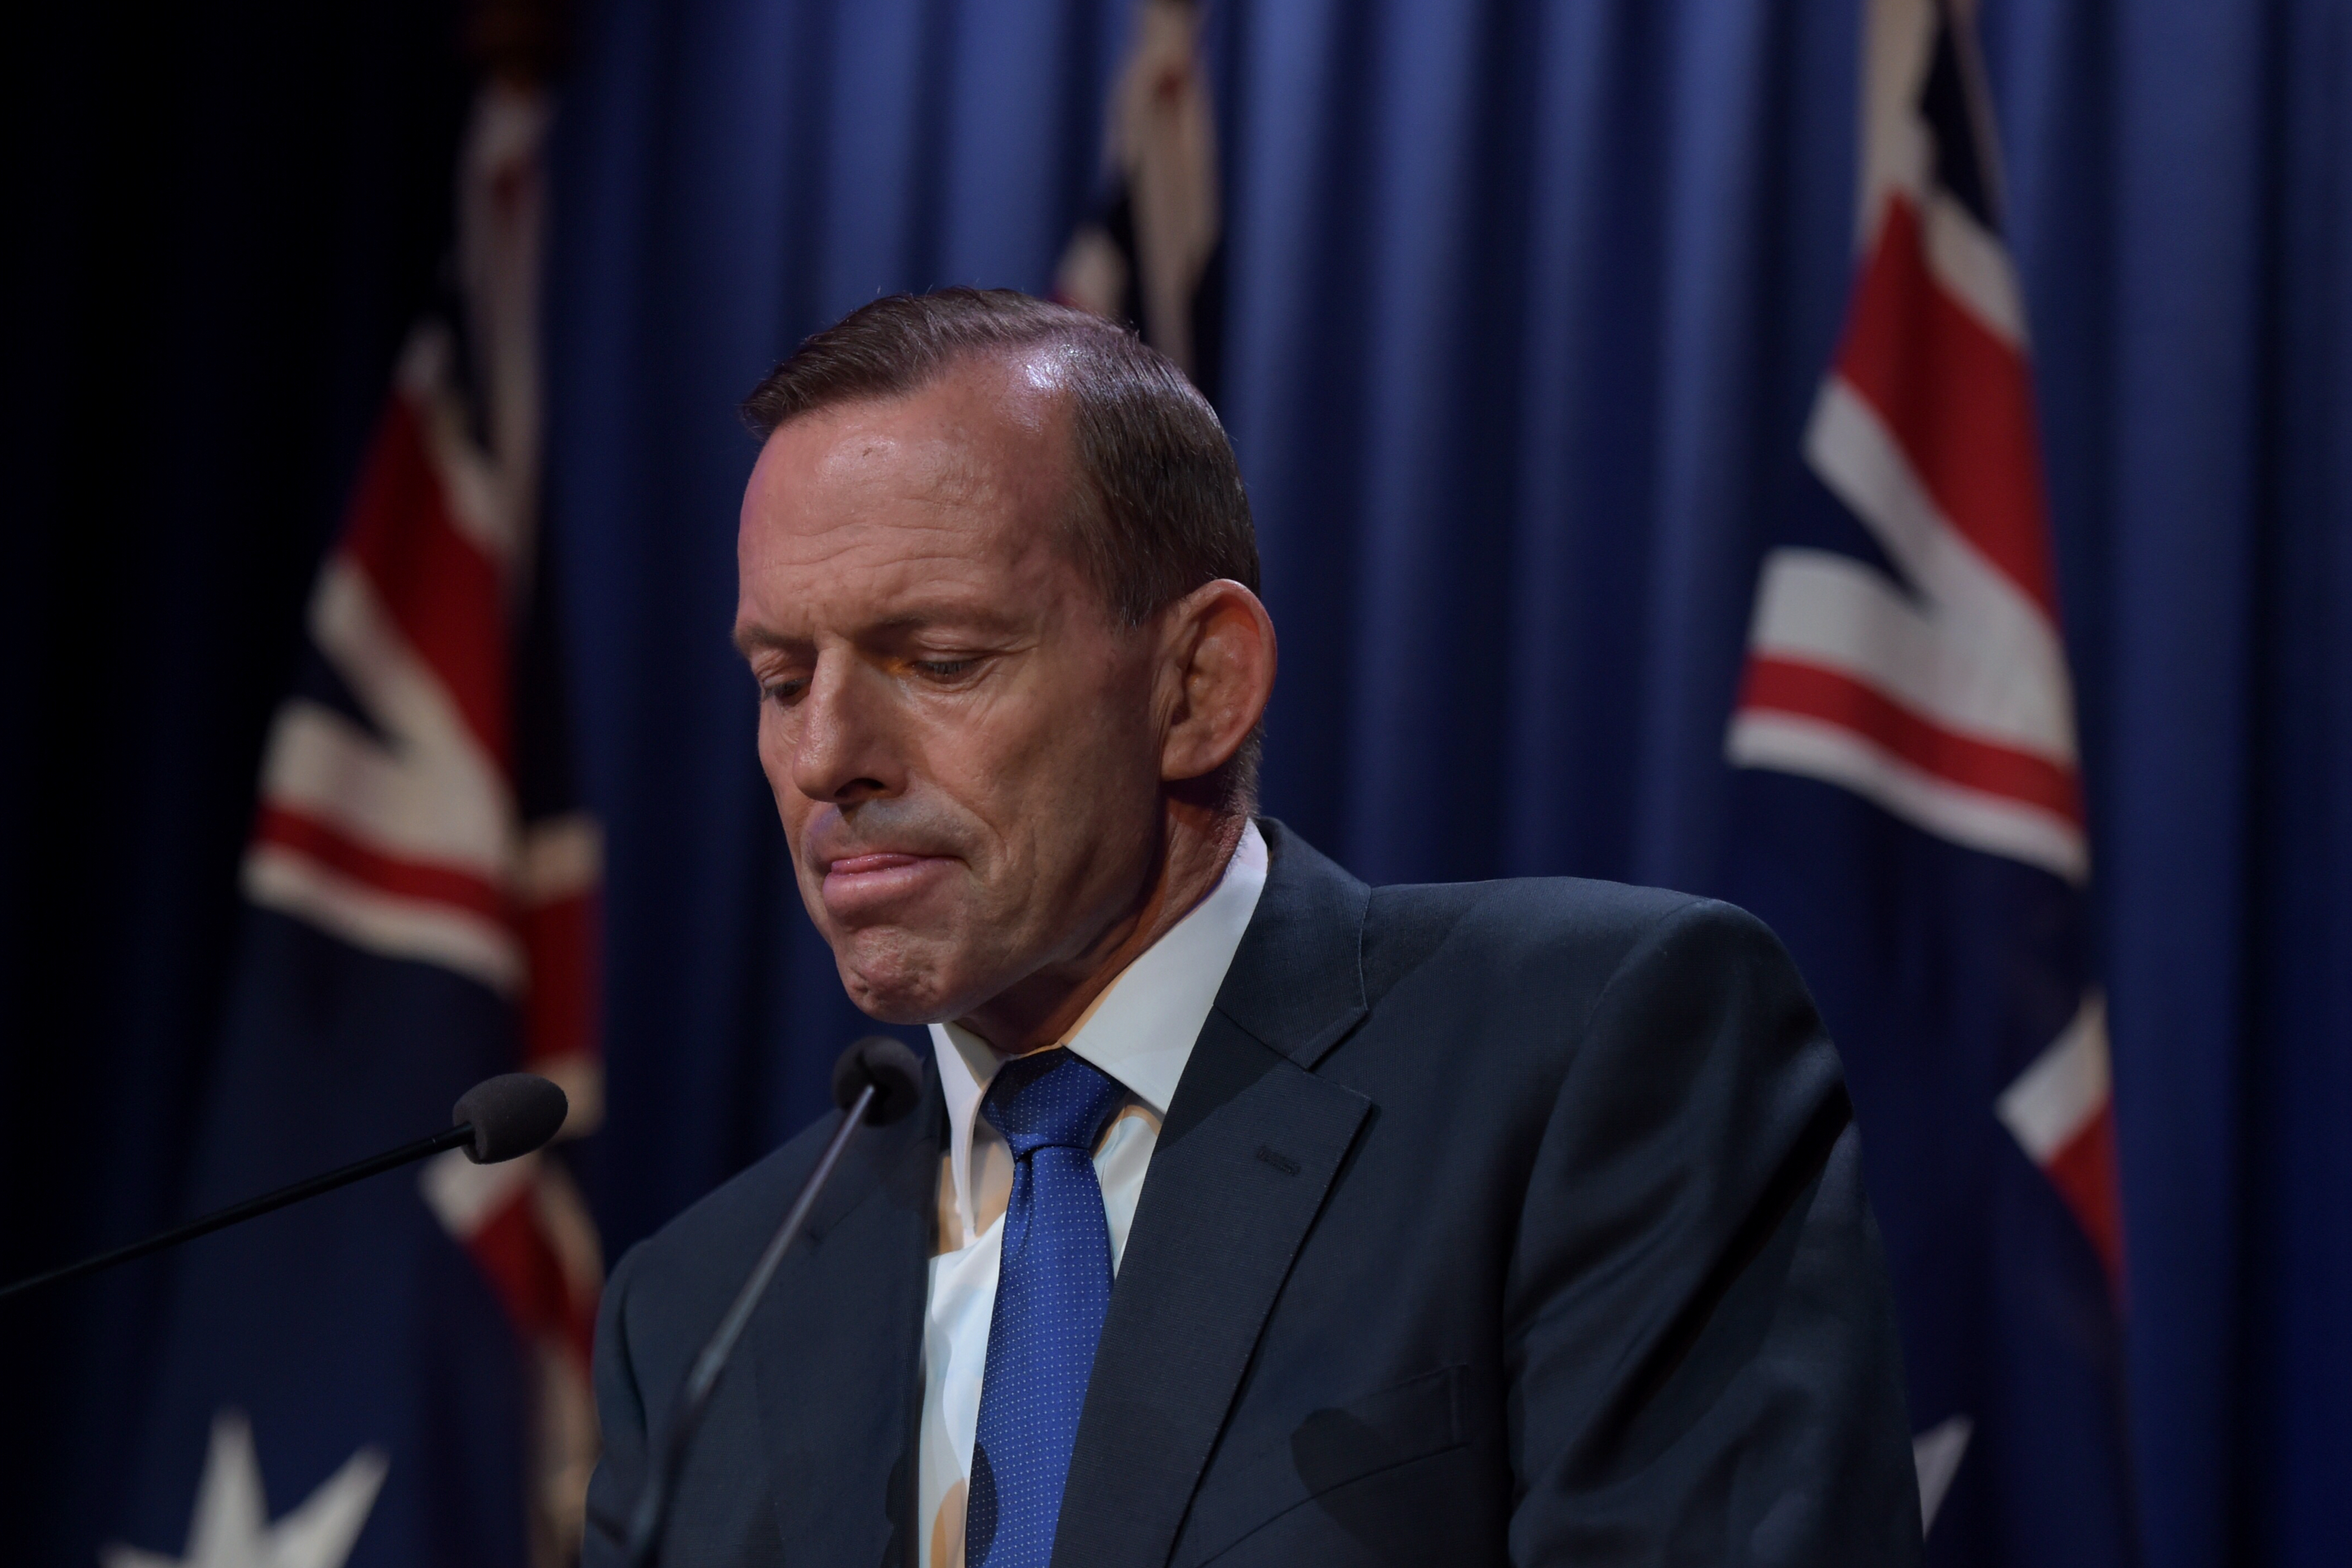 Abbott whistling up a storm